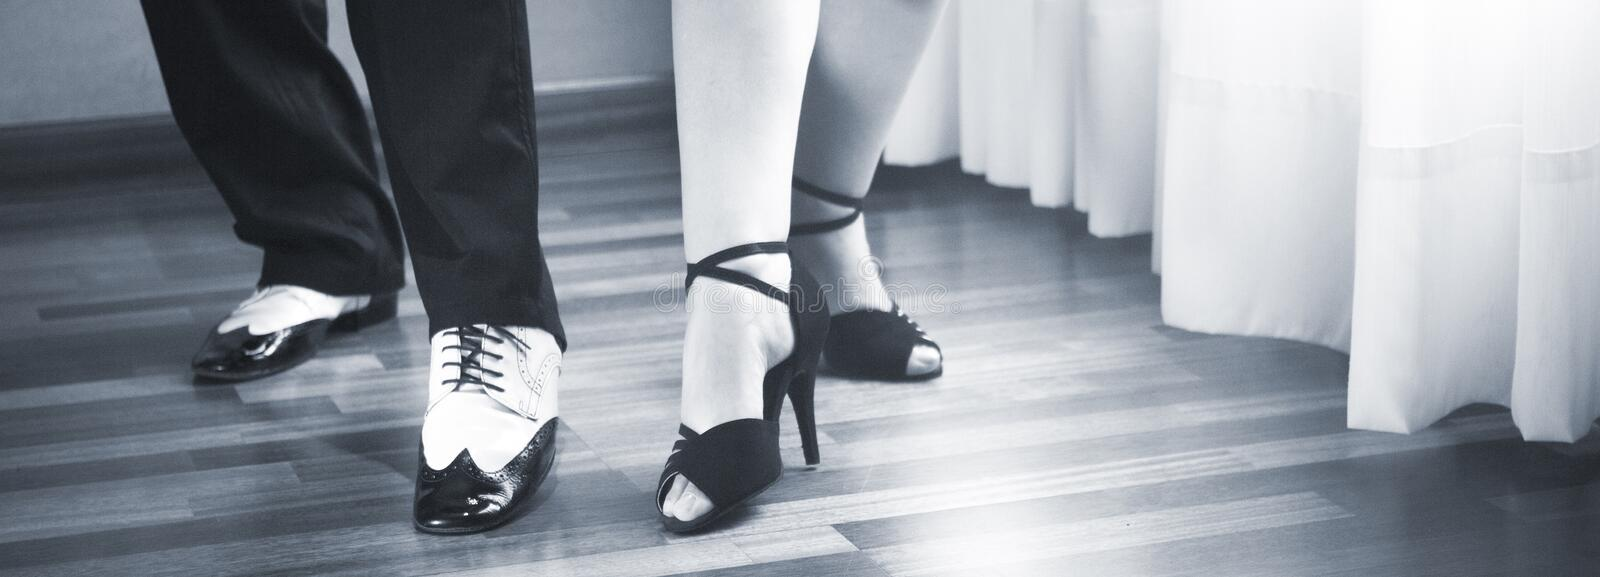 Ballroom dance latin dancers. Male and female ballroom, standard, sport dance, latin and salsa couple dancers feet and shoes in dance academy school rehearsal royalty free stock photo